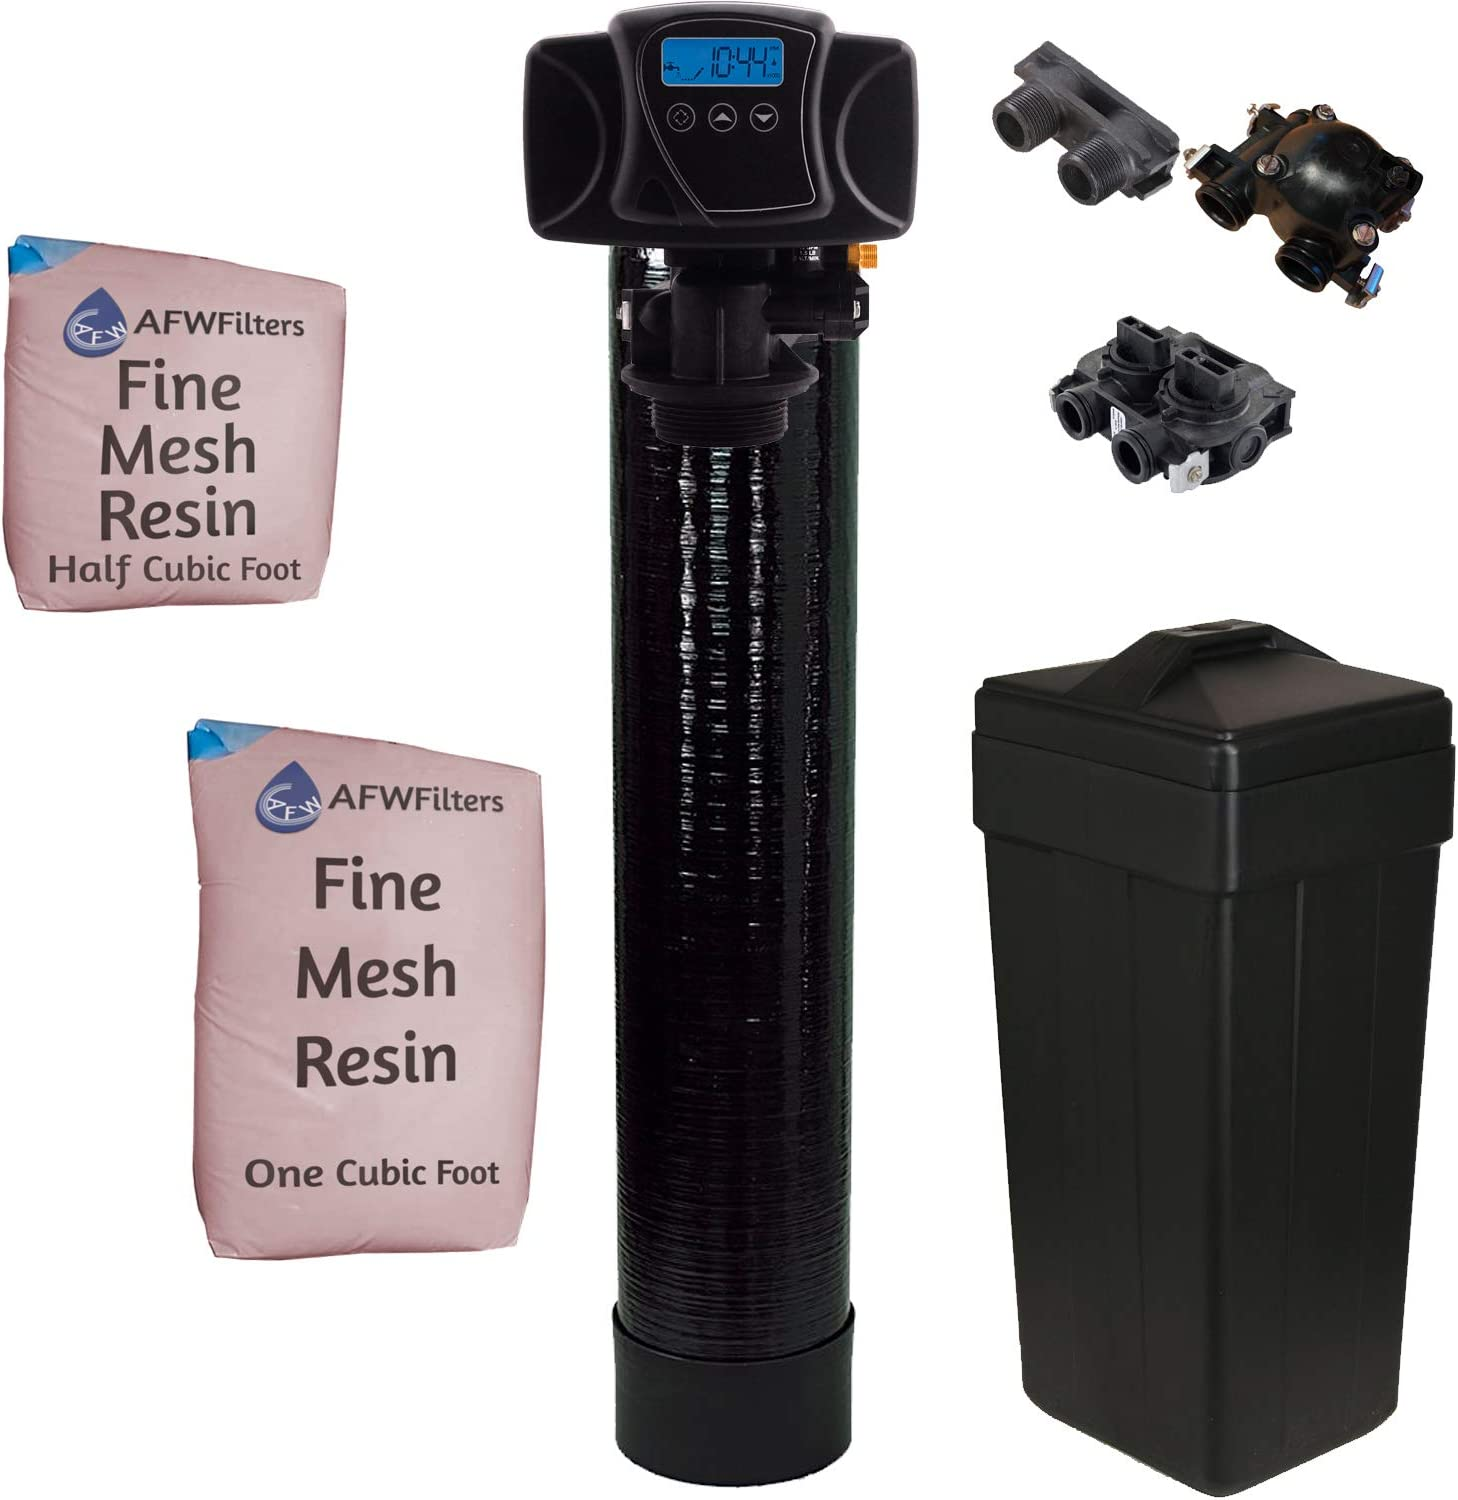 Fleck IRON Pro 2 AFW Filters Combination Water Softener Iron Filter 5600SXT Digital Metered Valve for Whole House (48,000 Grains, Black)